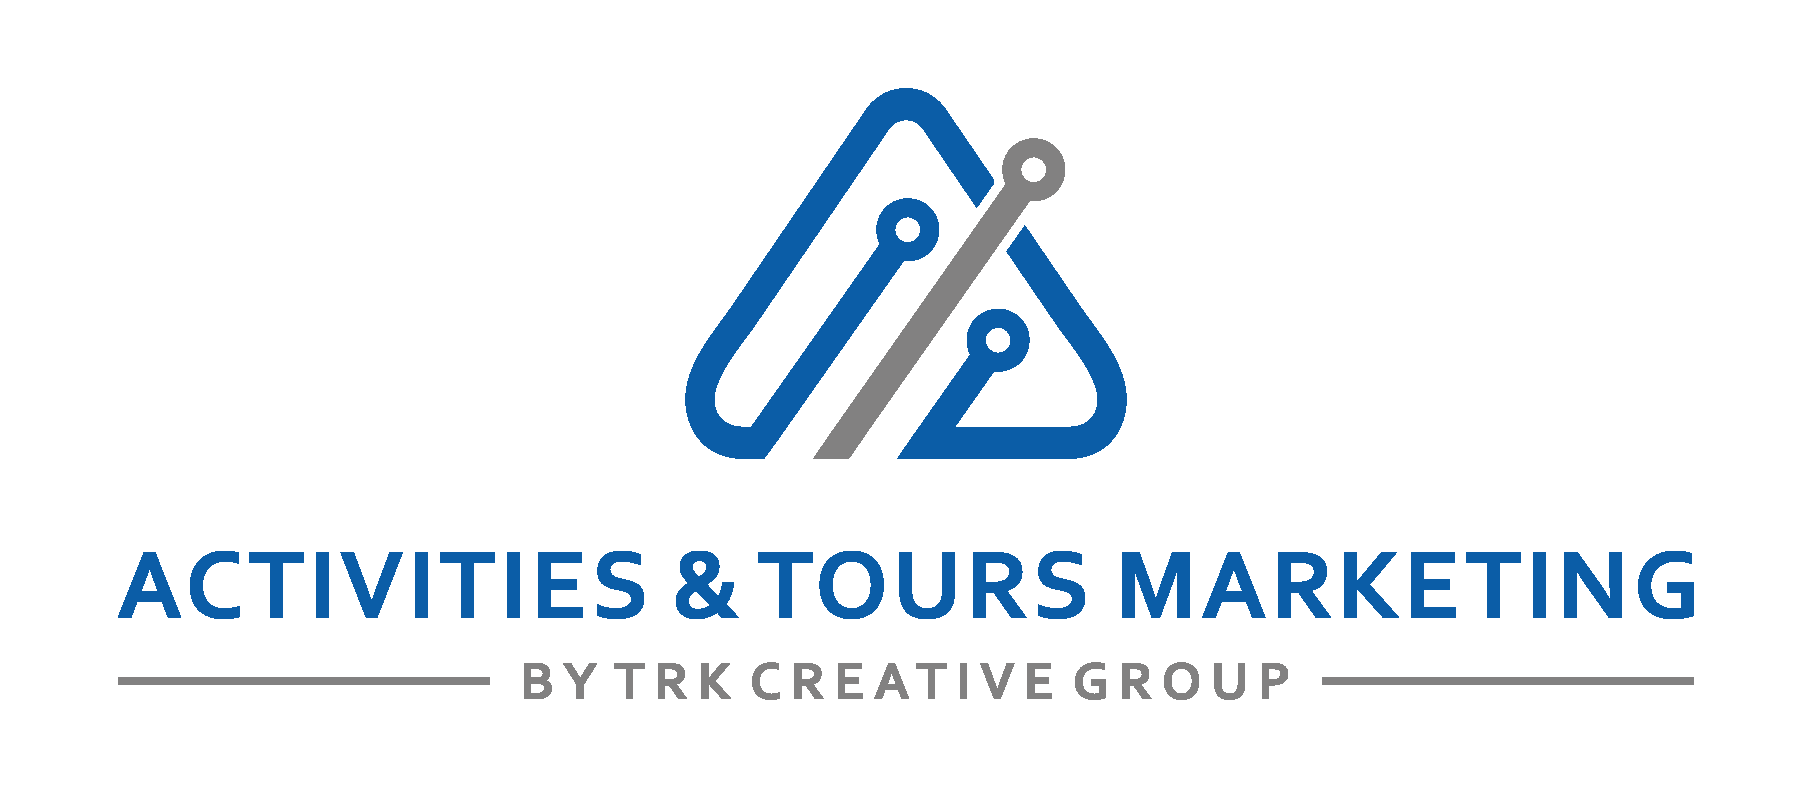 Activities & Tours Marketing by TRK Creative Group - Tier III